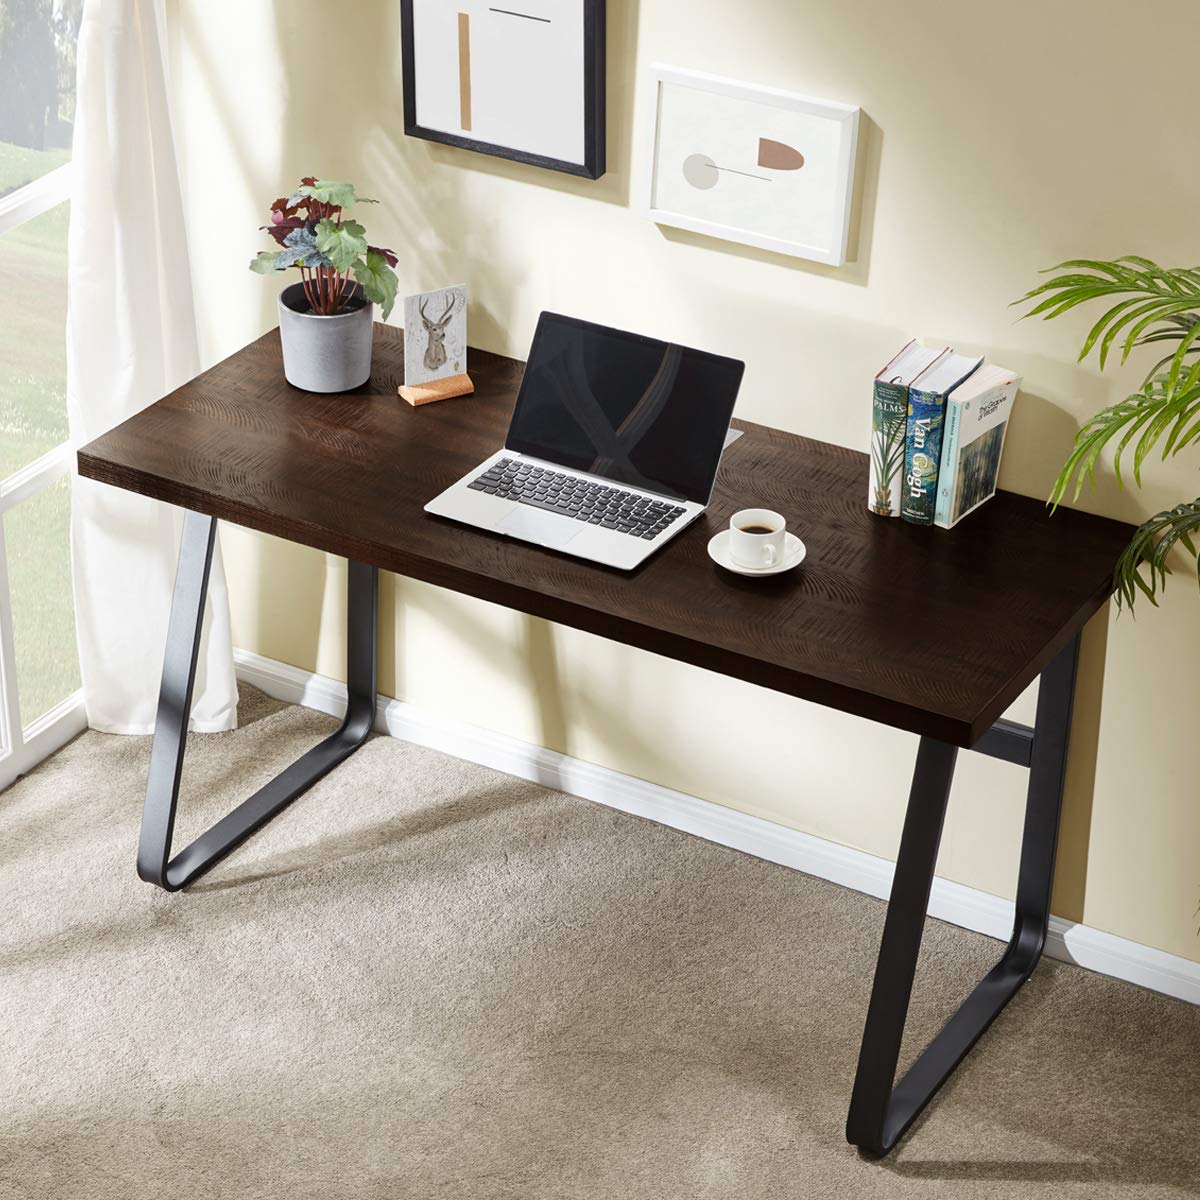 DYH Vintage Computer Desk, Wood and Metal Writing Desk, PC Laptop Home Office Study Table, Espresso 55 inch by dyh